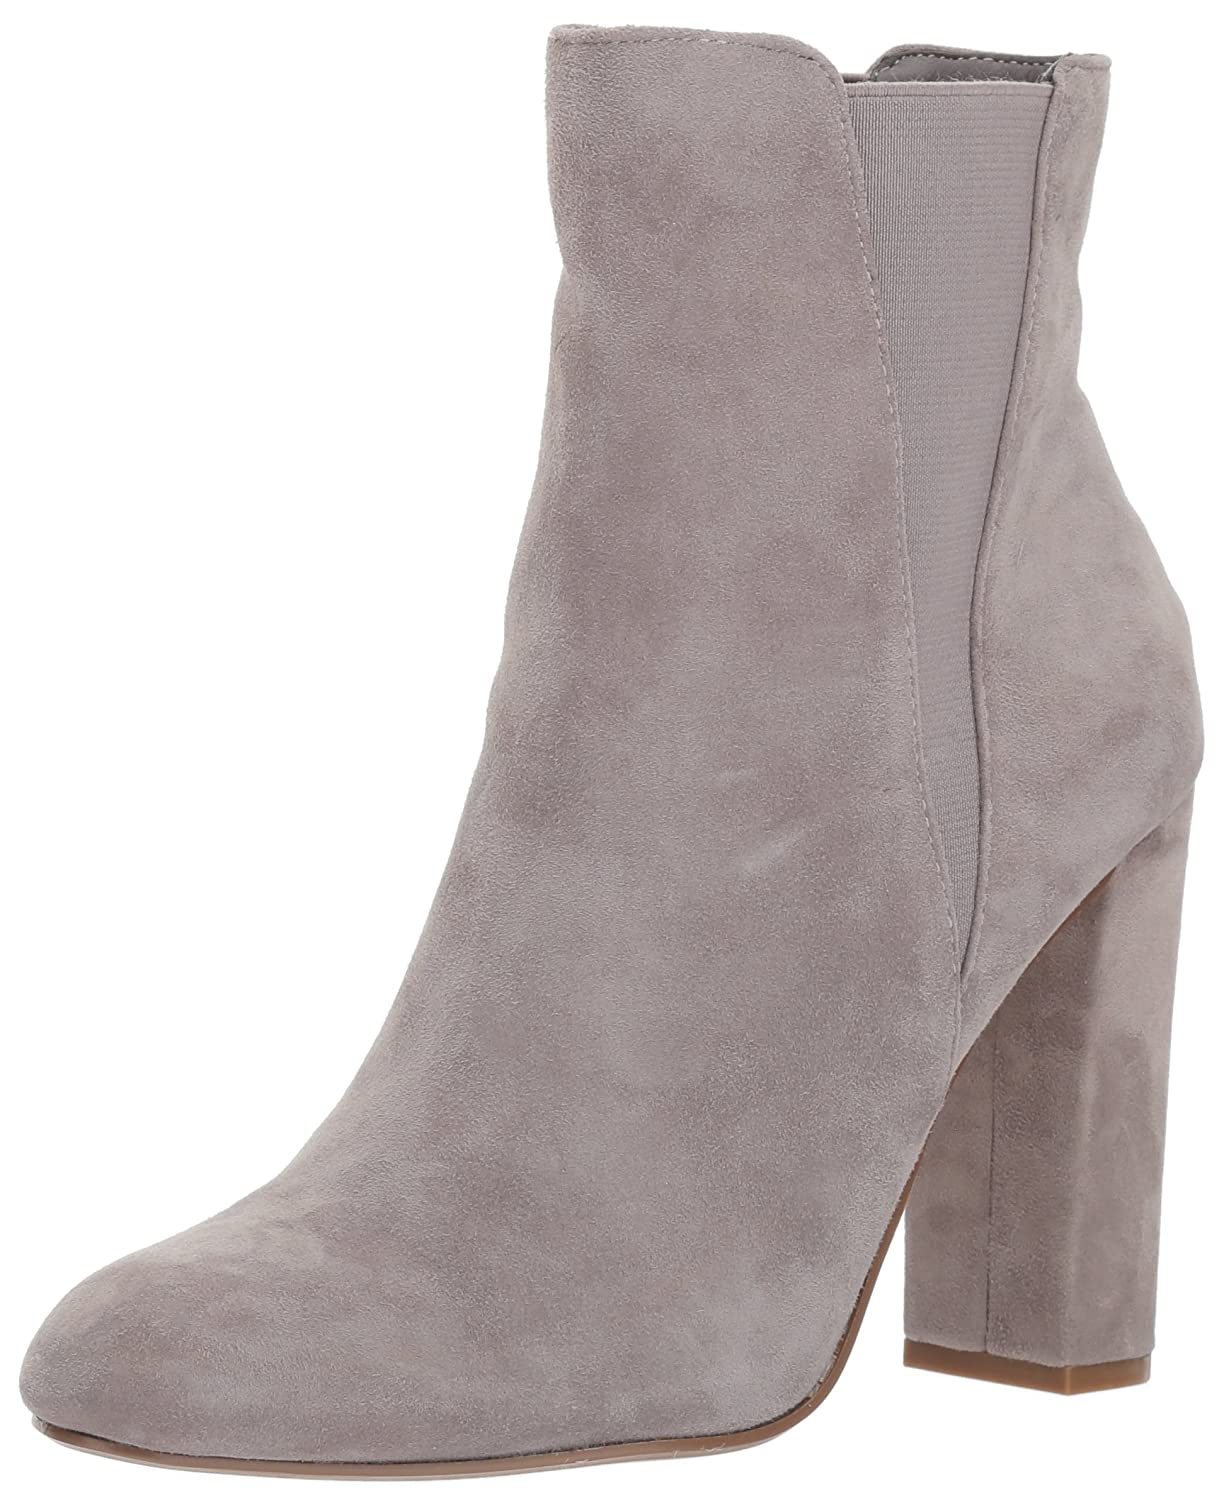 Steve Madden Women's Effect Ankle Boot B06XH3NFMH 7 B(M) US|Grey Suede